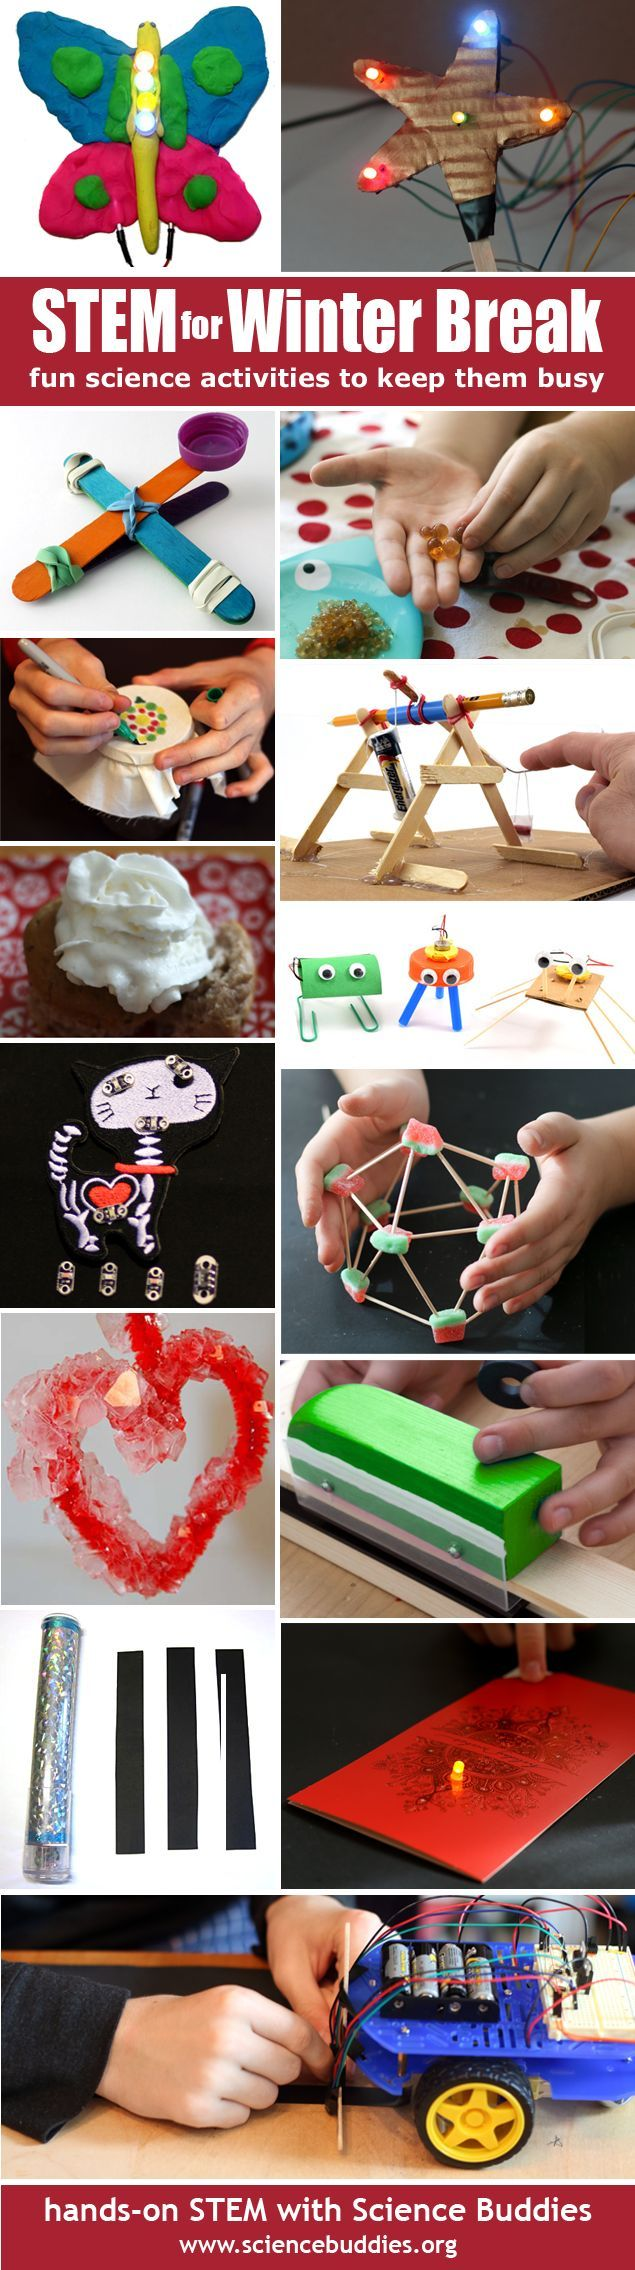 """STEM at Home for Winter Break""-- great science-themed ""to do"" options for Winter Break. [Science Buddies, http://www.sciencebuddies.org/blog/2016/12/stem-for-winter-break.php?from=Pinterest] #winterbreak #scienceprojects #STEM #homescience #familyscience #scienceactivities"